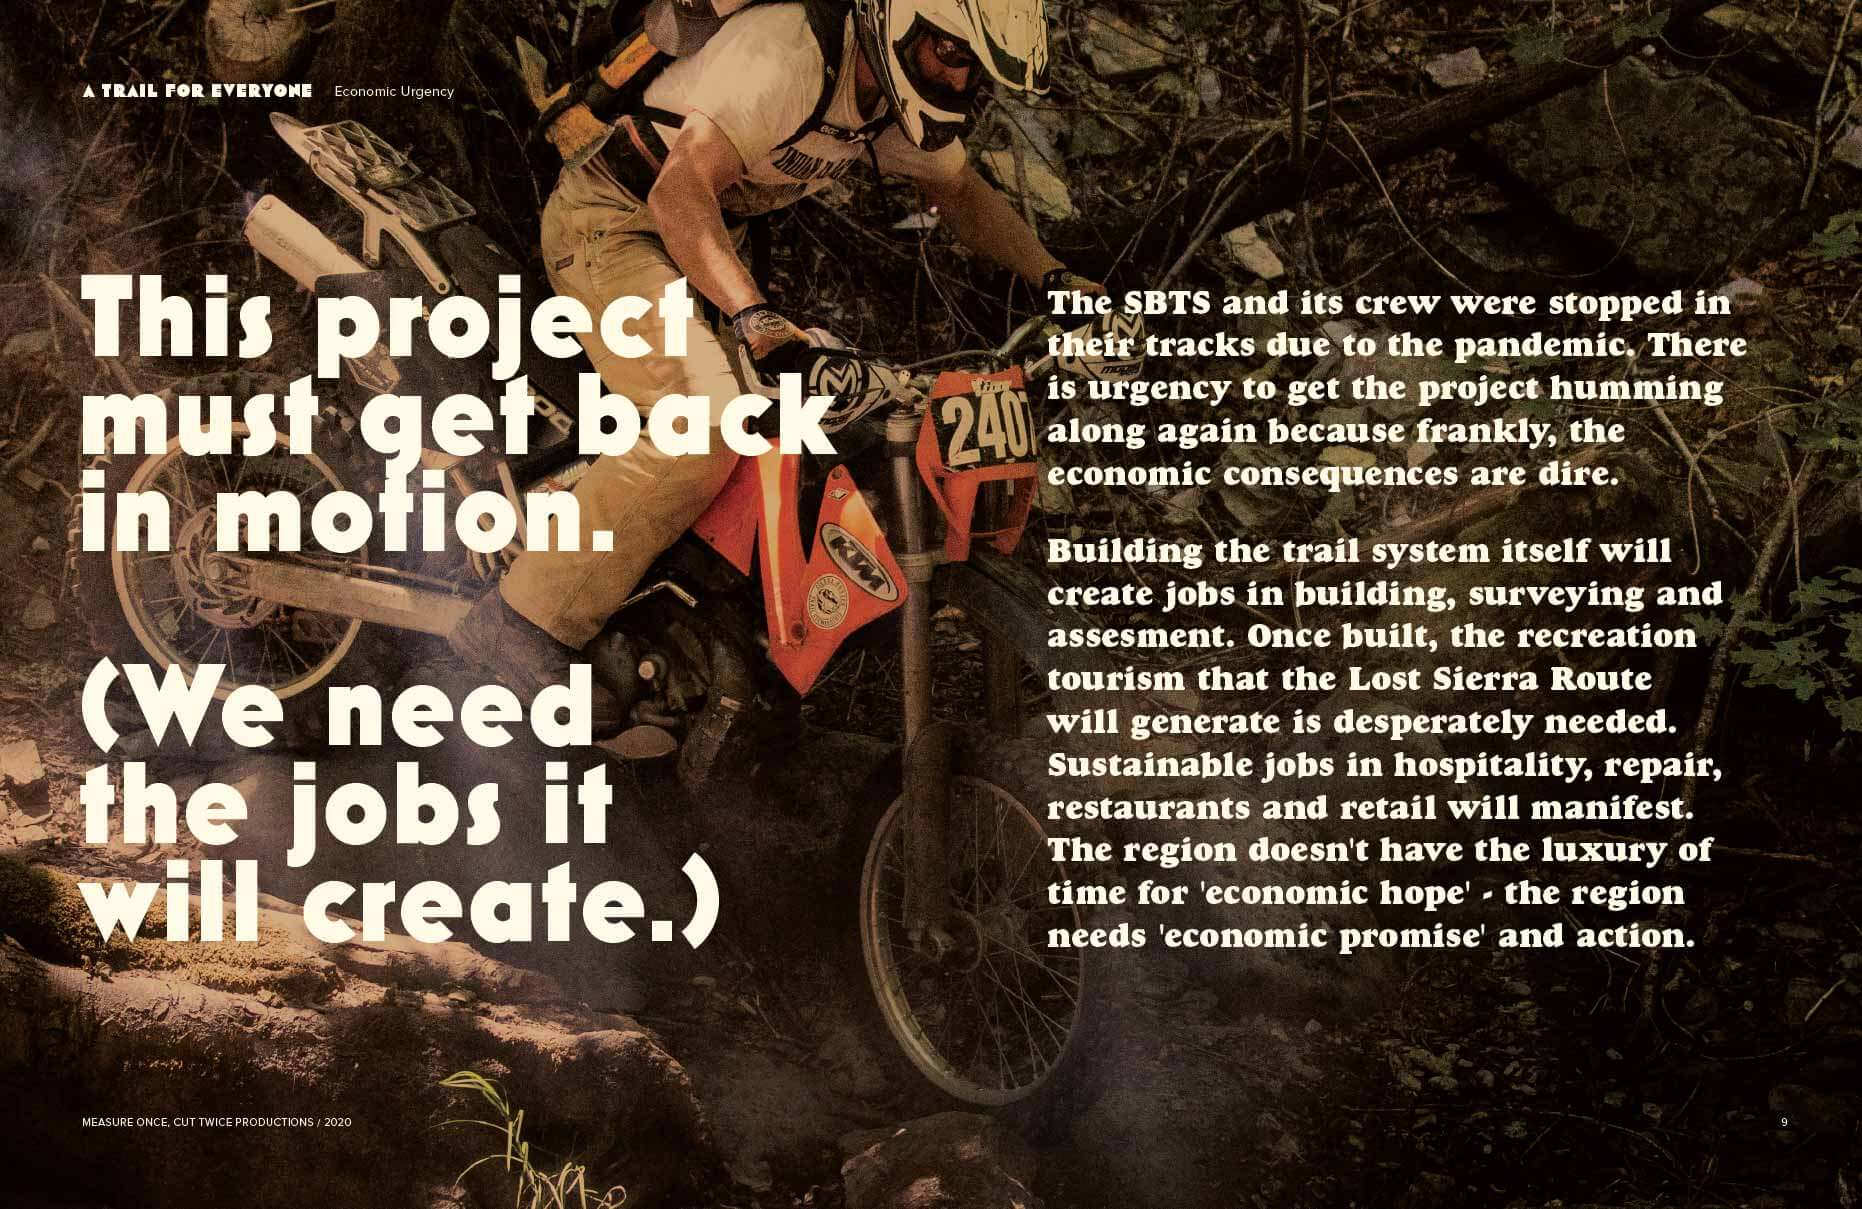 This project must get back in motion. (We need the jobs it will create.)